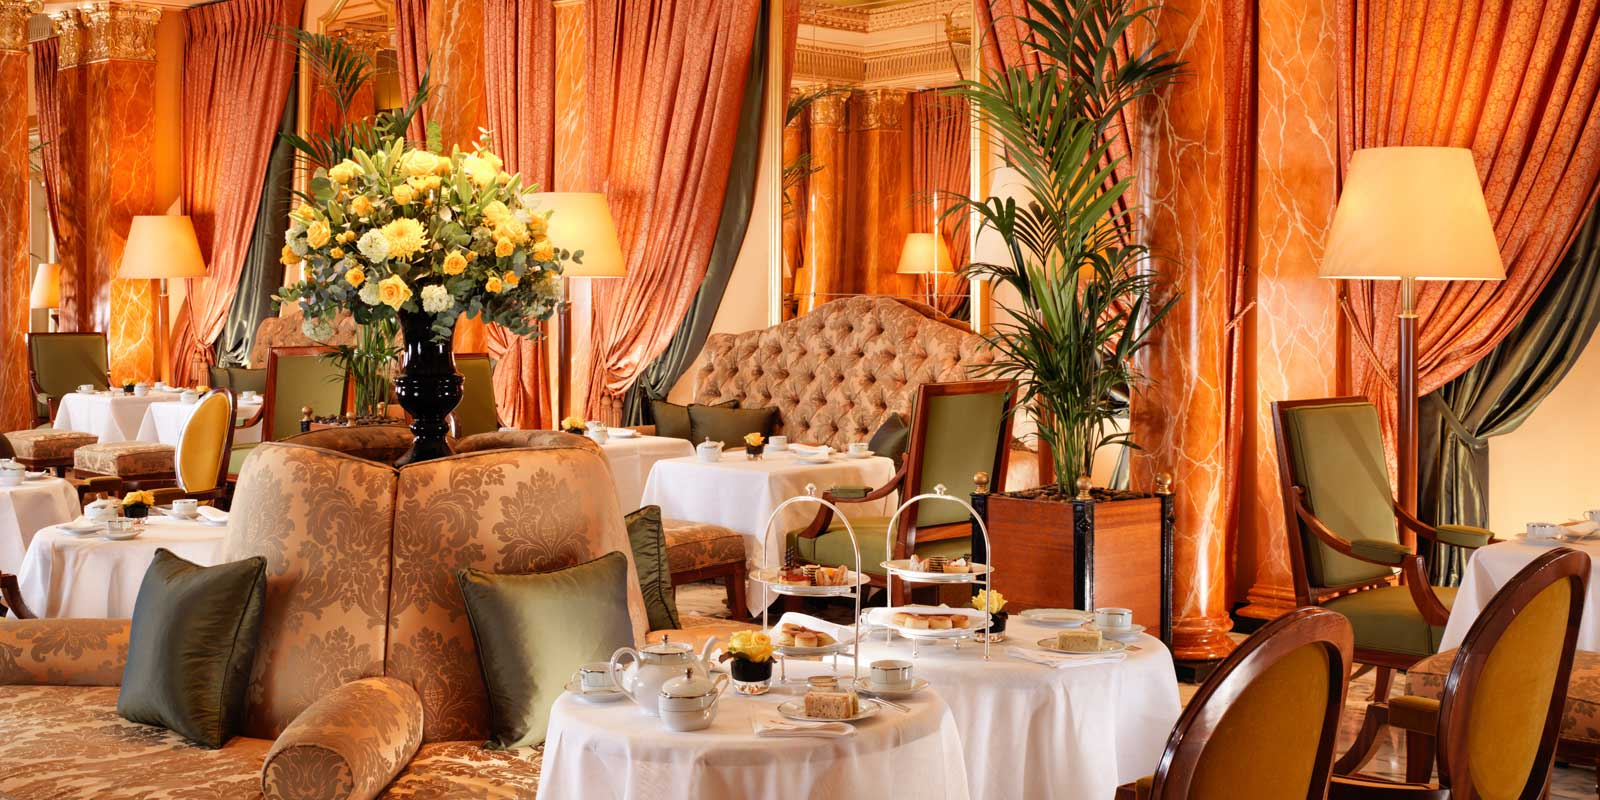 The Dorchester Afternoon Tea